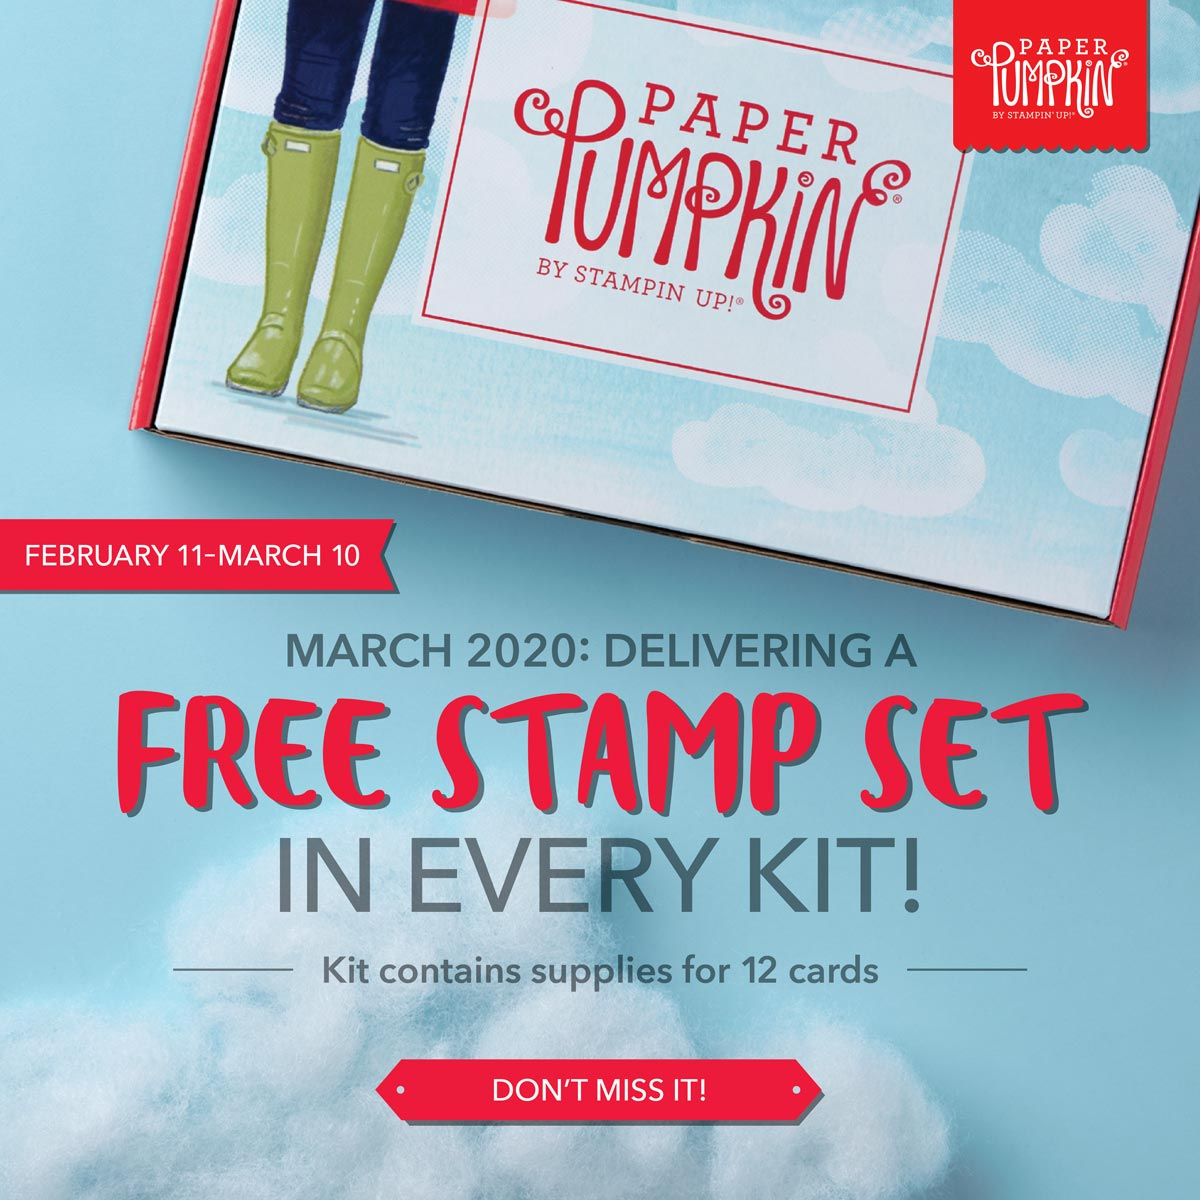 Stampin' Up! News and The Stamp Camp